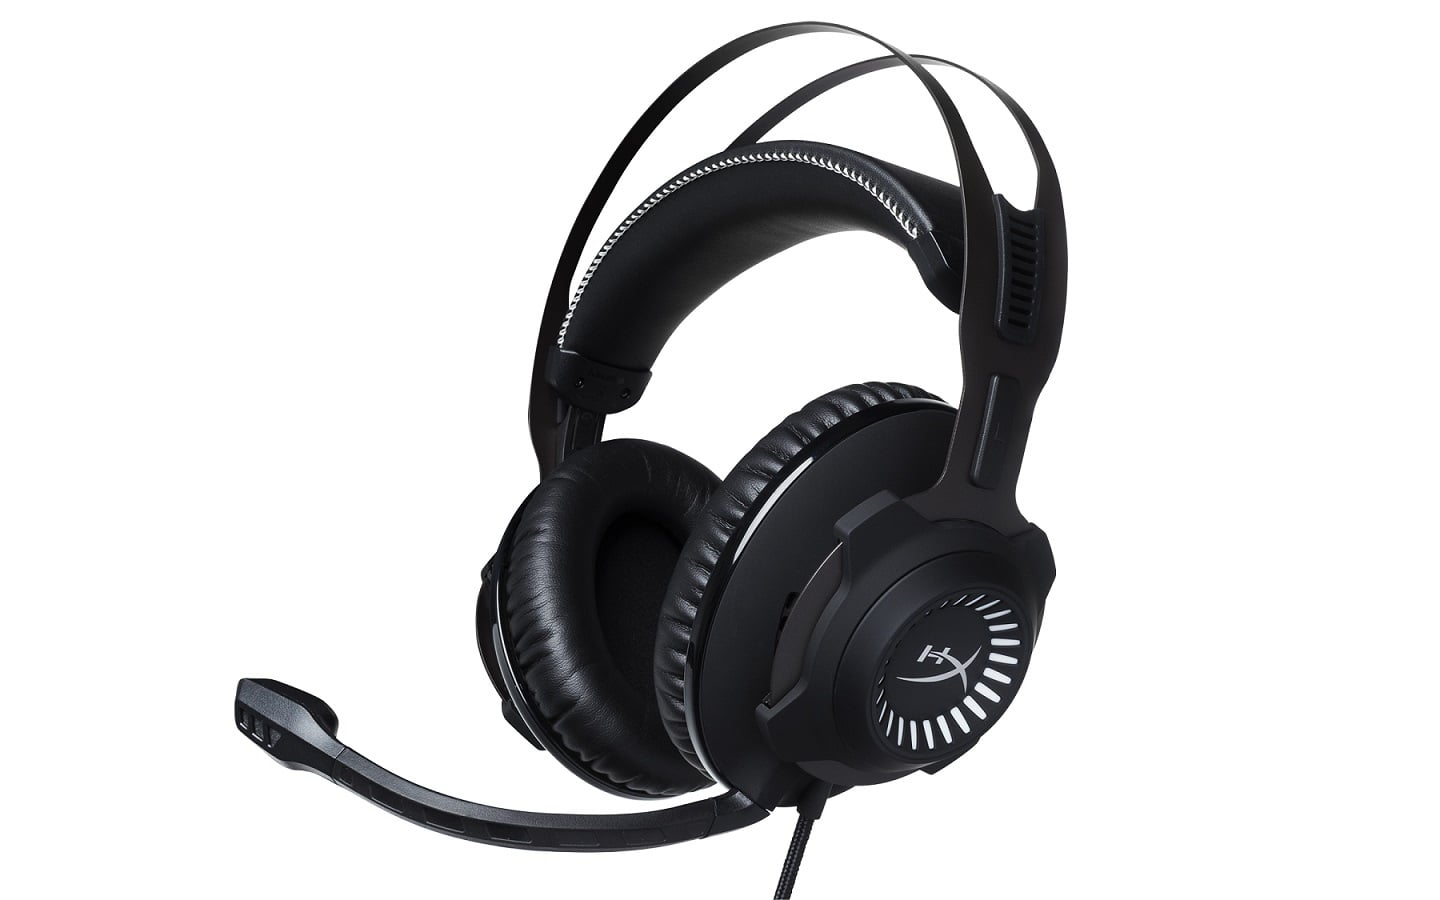 HyperX Launches Cloud Revolver S Gaming Headset Powered by Dolby Headphone Technology | Custom ...